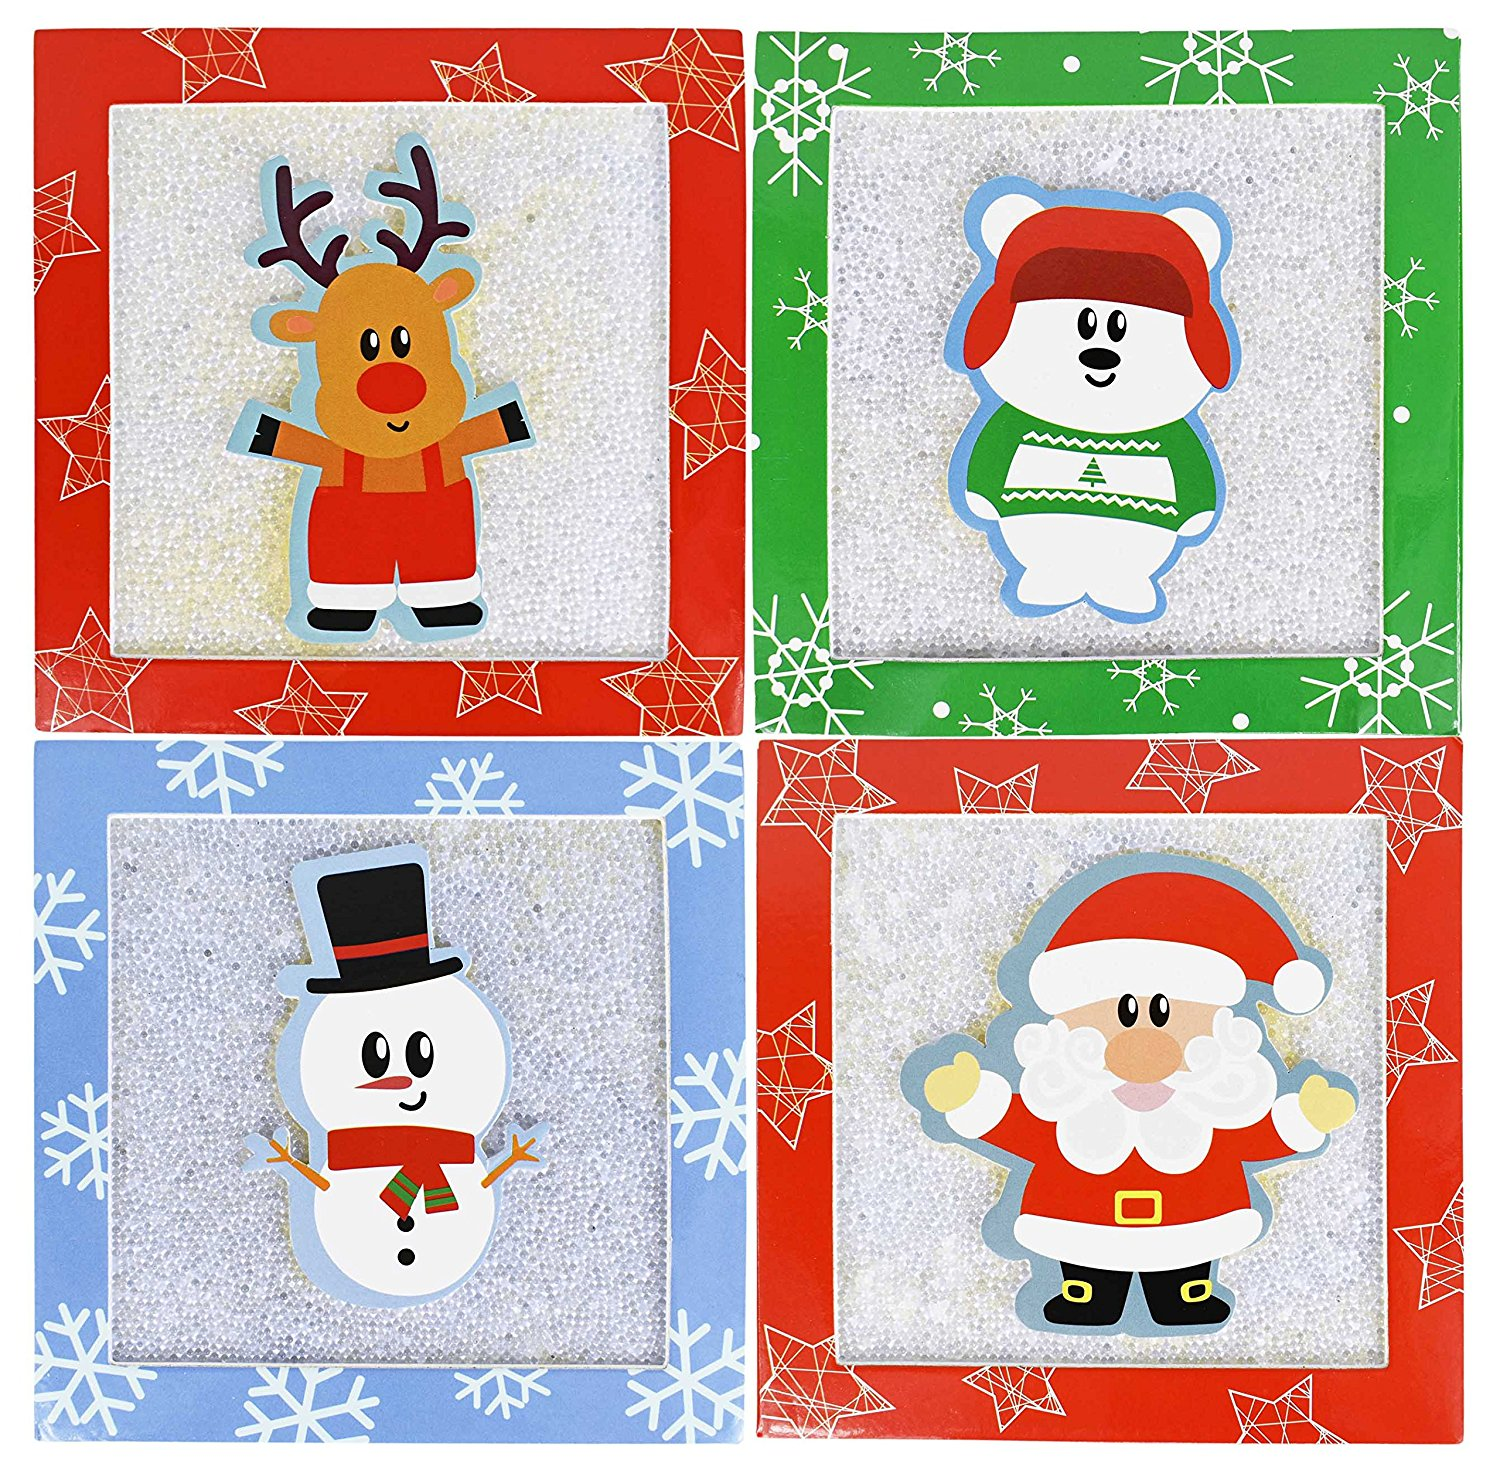 "Set of 4 Christmas/Holiday Money/Gift Card Holder Gift Boxes 4.5"" x 2.5"" With Pop-up Christmas Characters and Sugaring Texture!…"